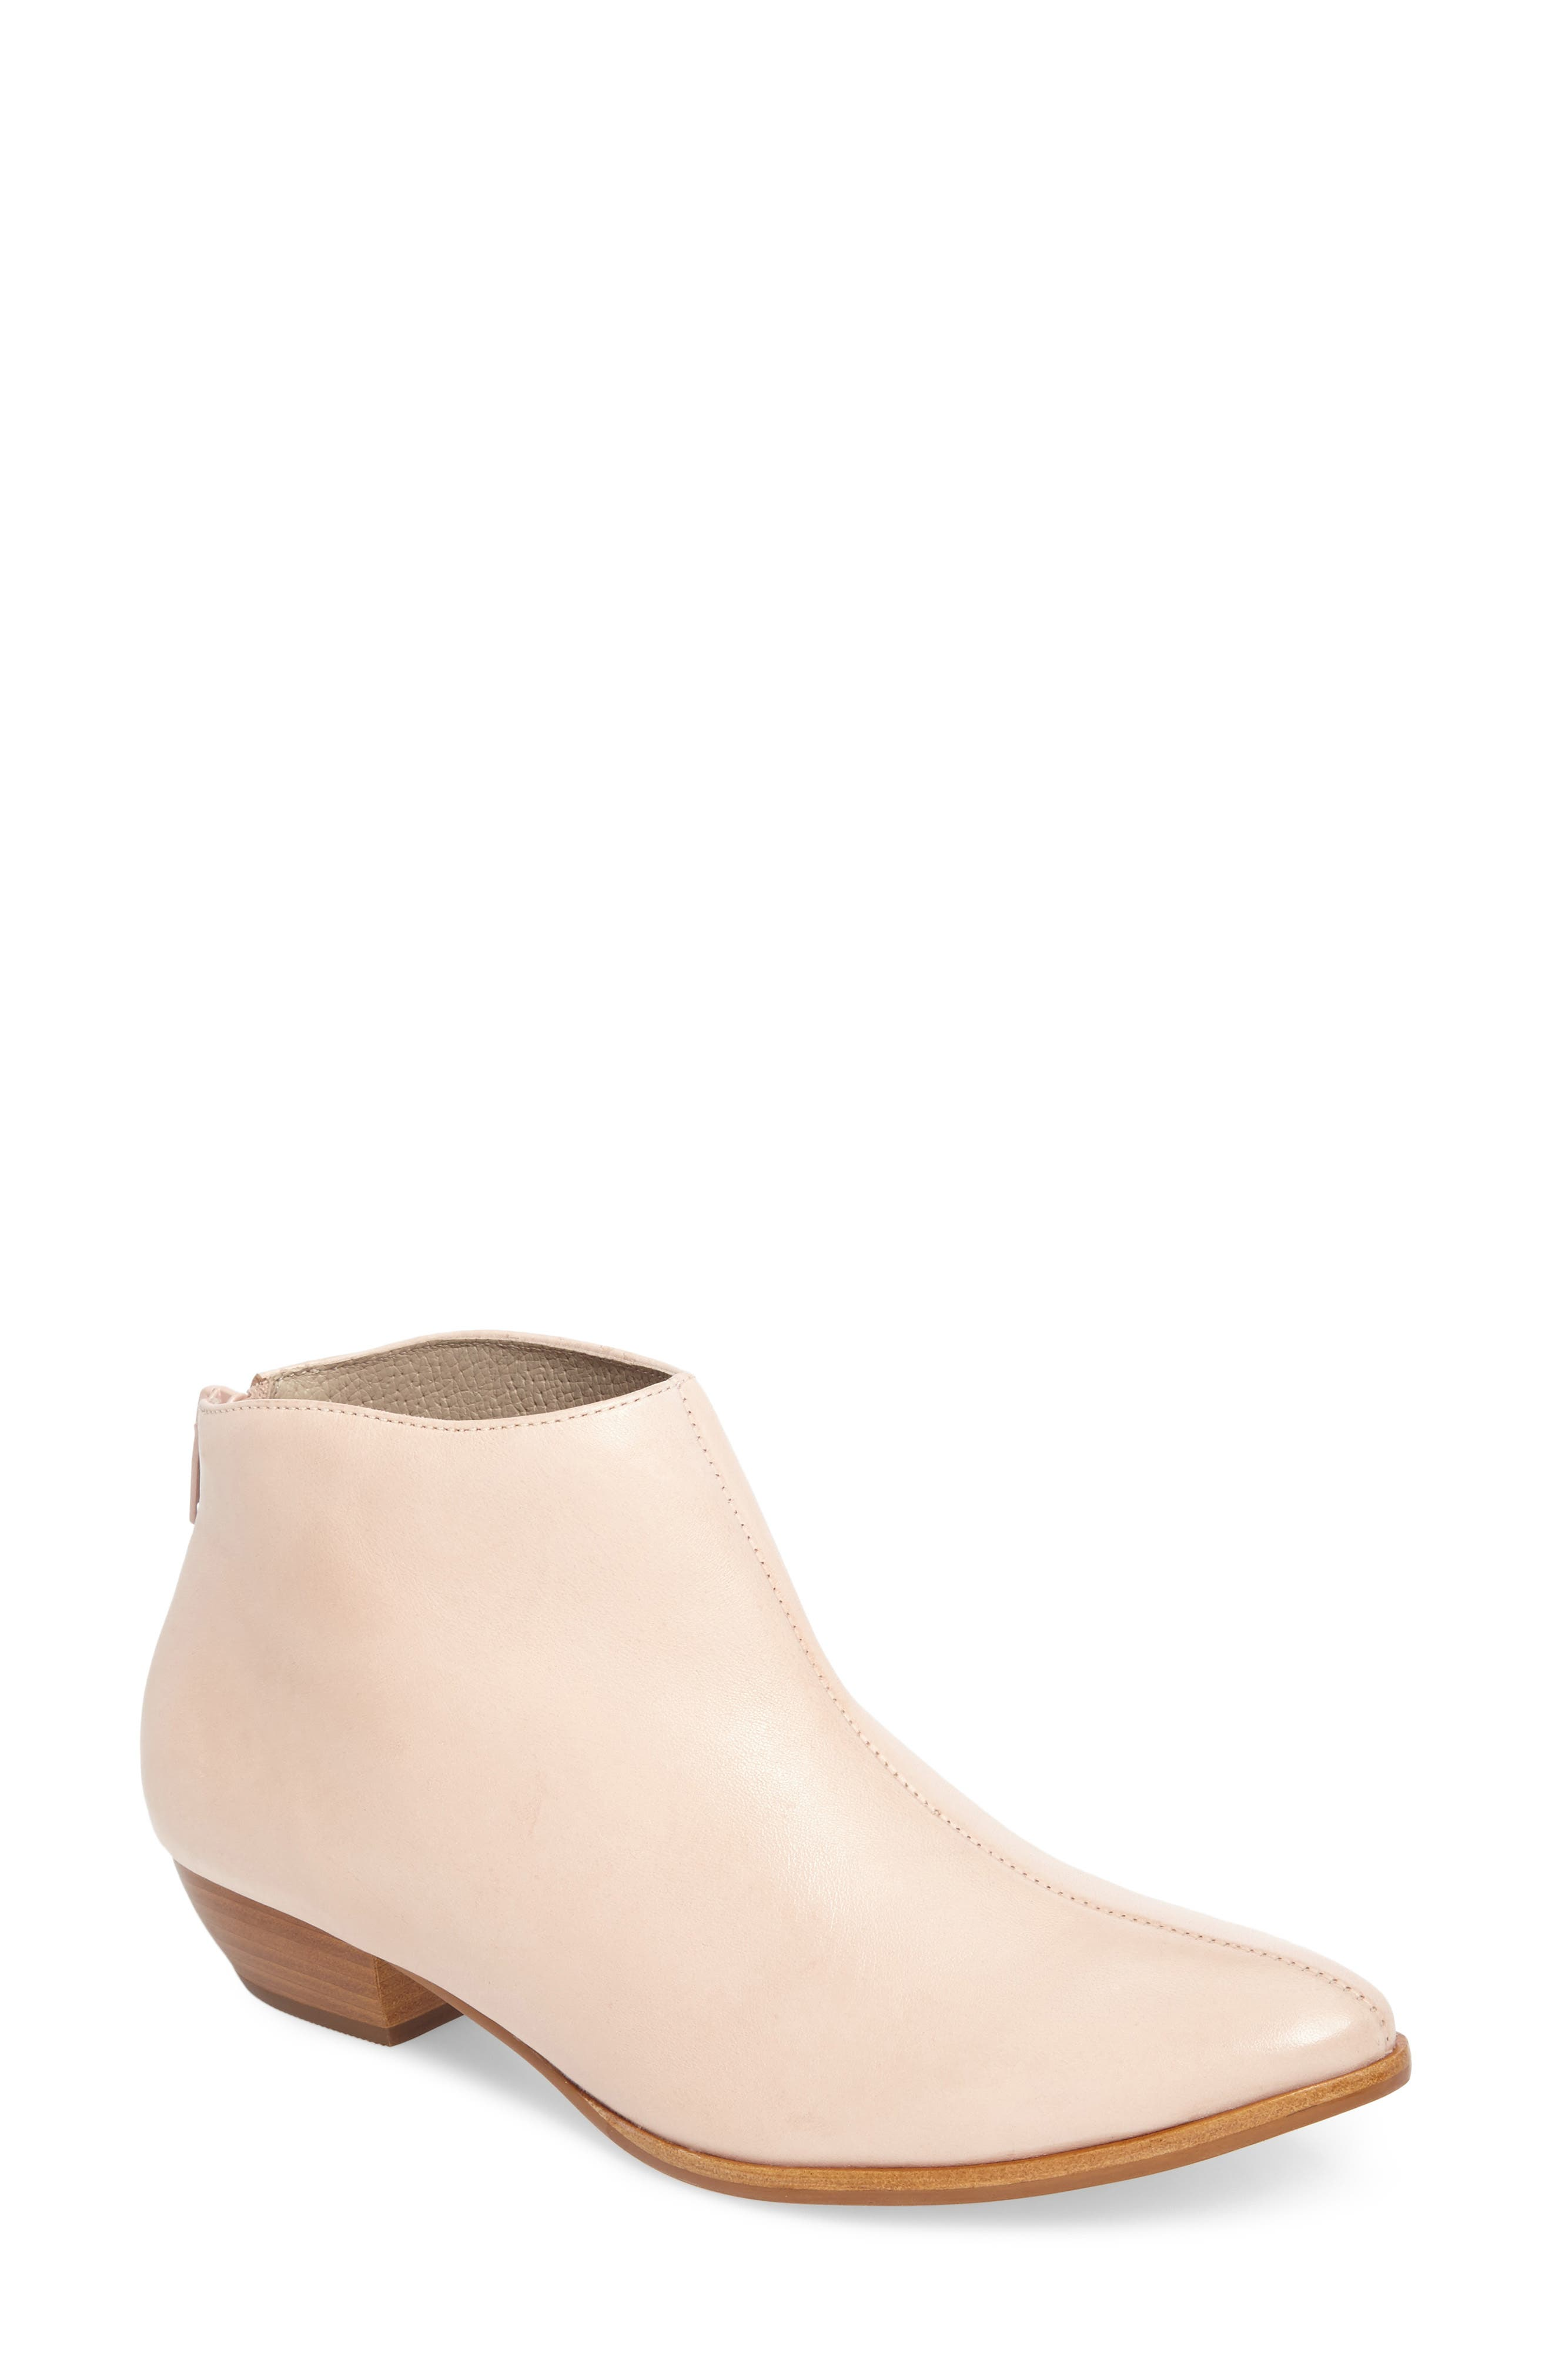 Aida Low Bootie,                             Main thumbnail 1, color,                             NUDE LEATHER